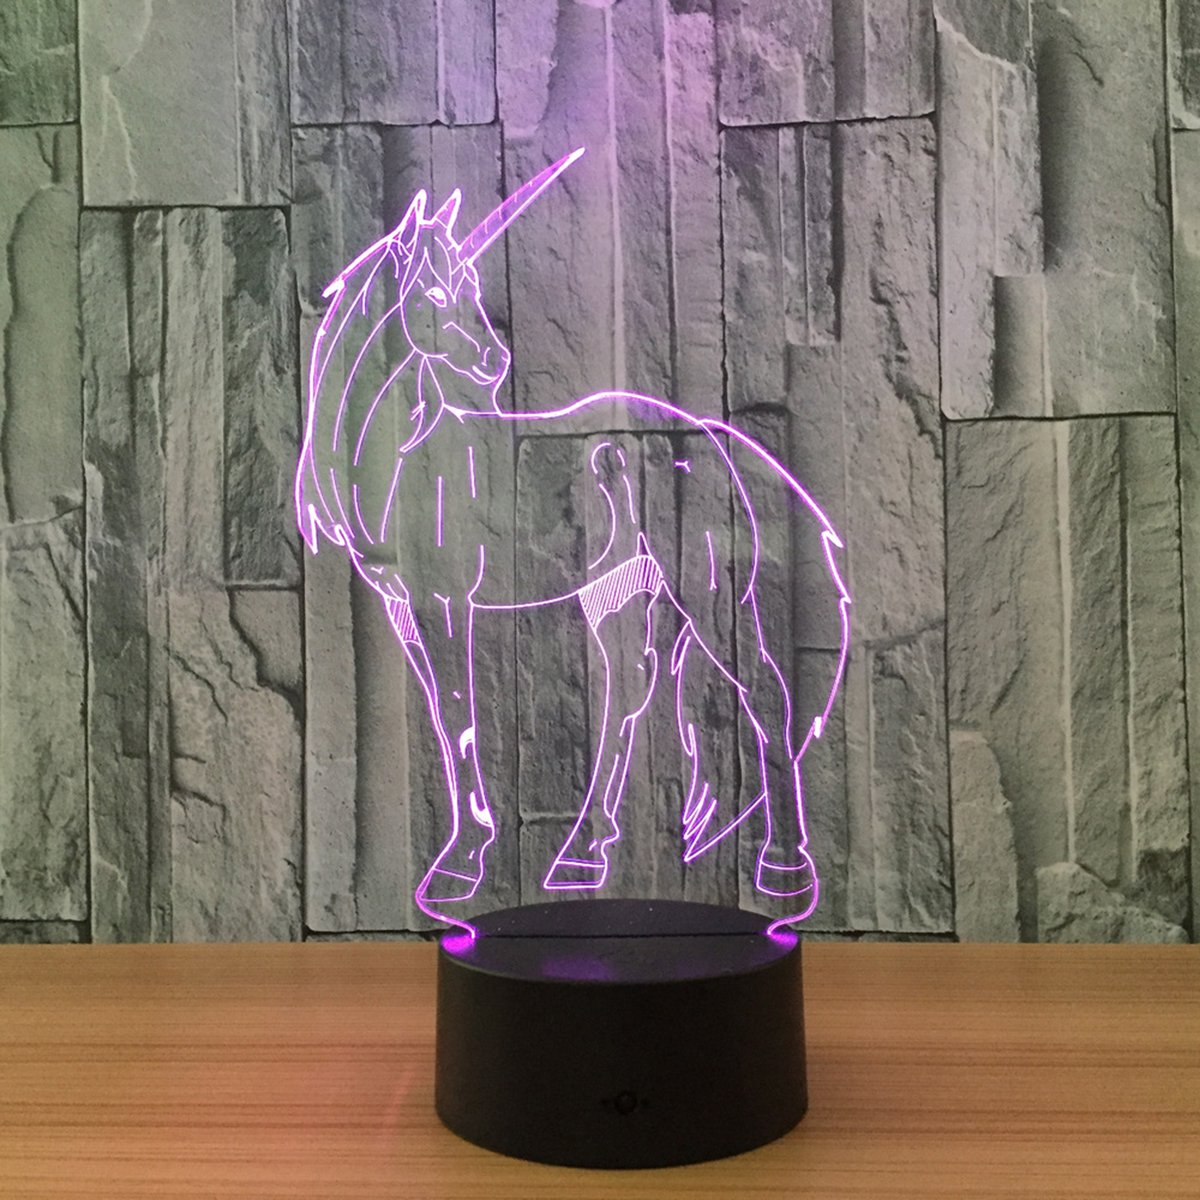 Novelty Unicorn 3D Illusion Lamp Led Night Light with 7 Colors Flashing & Touch Switch USB Powered Bedroom Desk Lamp for Kids Gifts Home Decoration by Atglus (Image #6)